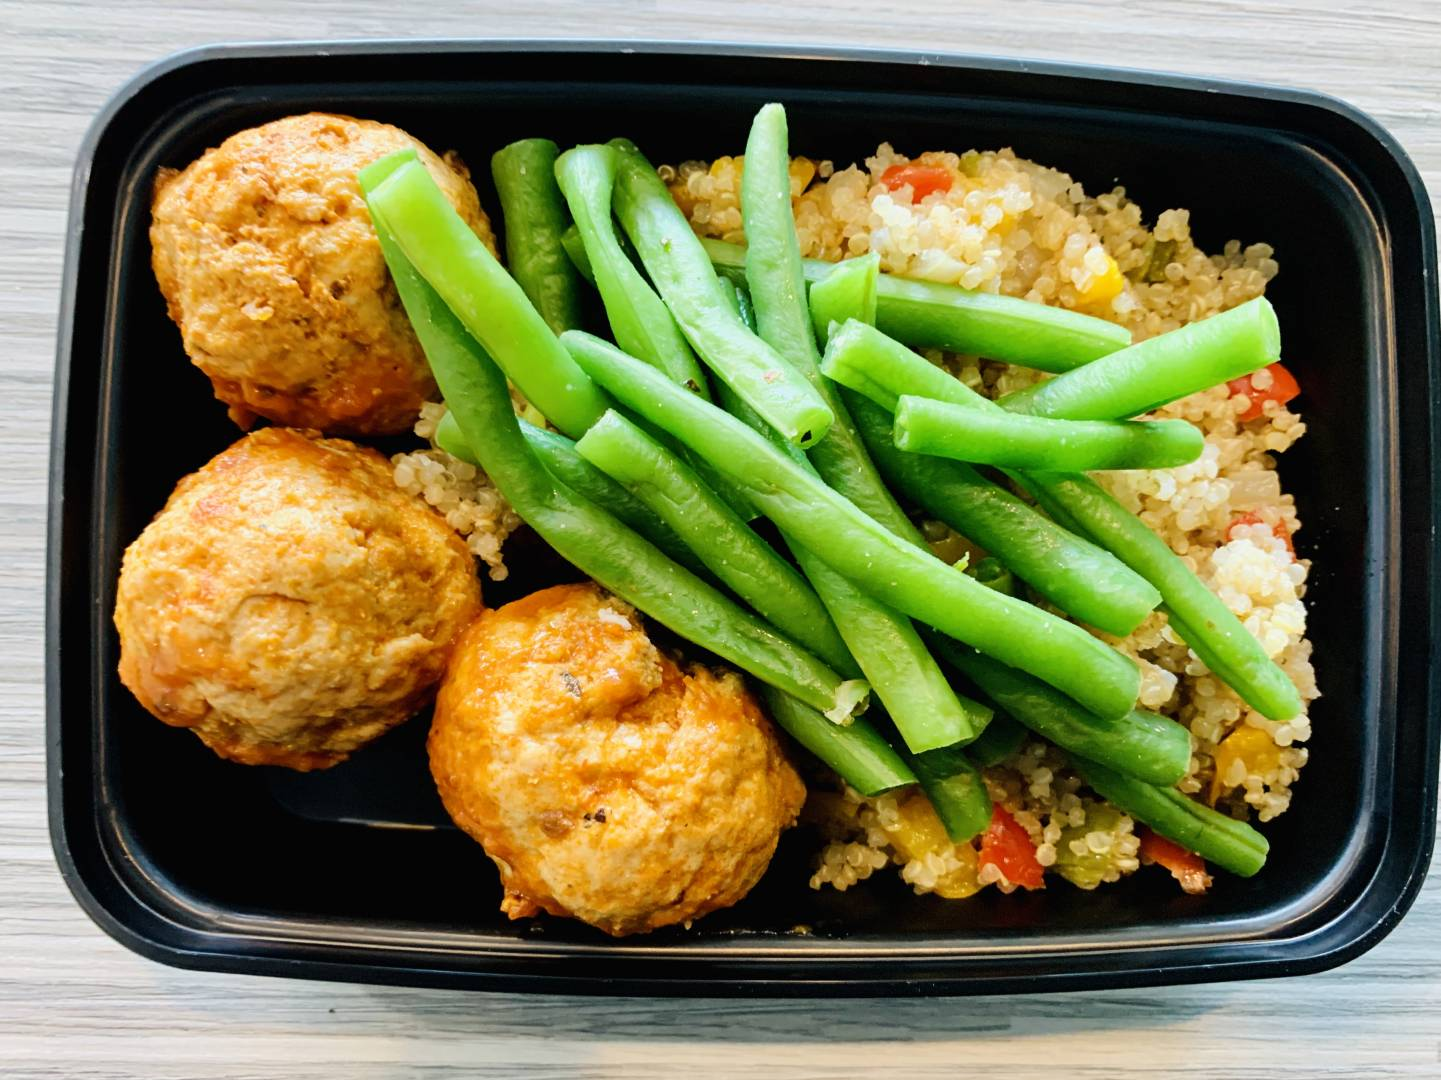 Turkey Meatballs, Quinoa and Green Beans